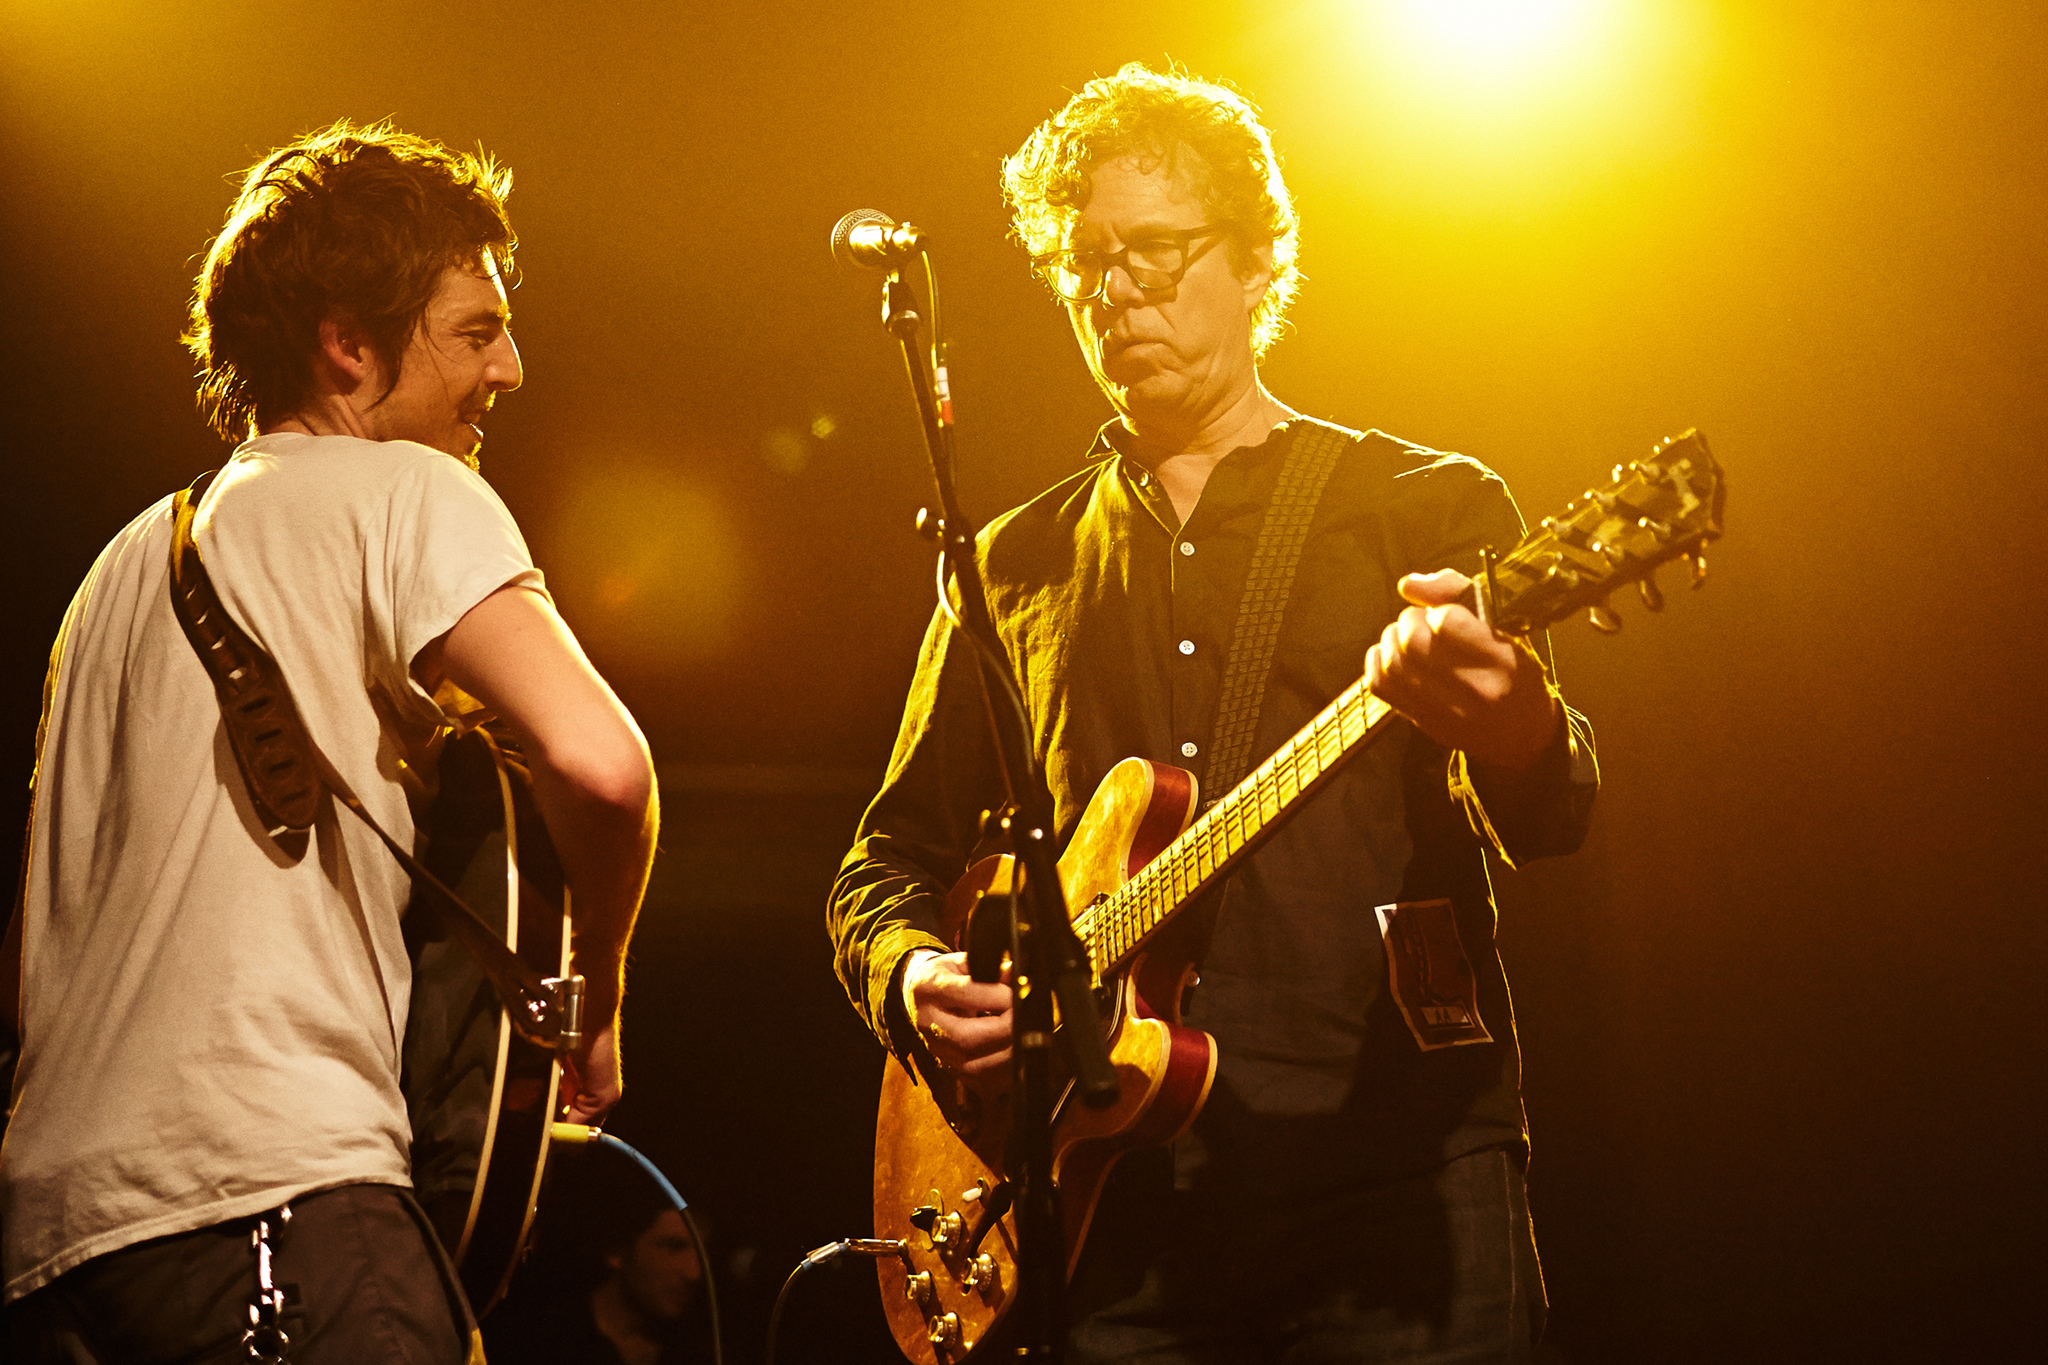 Augustana_At_The_Varsity_Theater_Minneapolis_2014_Photo_By_Joe_Lemke_24.JPG